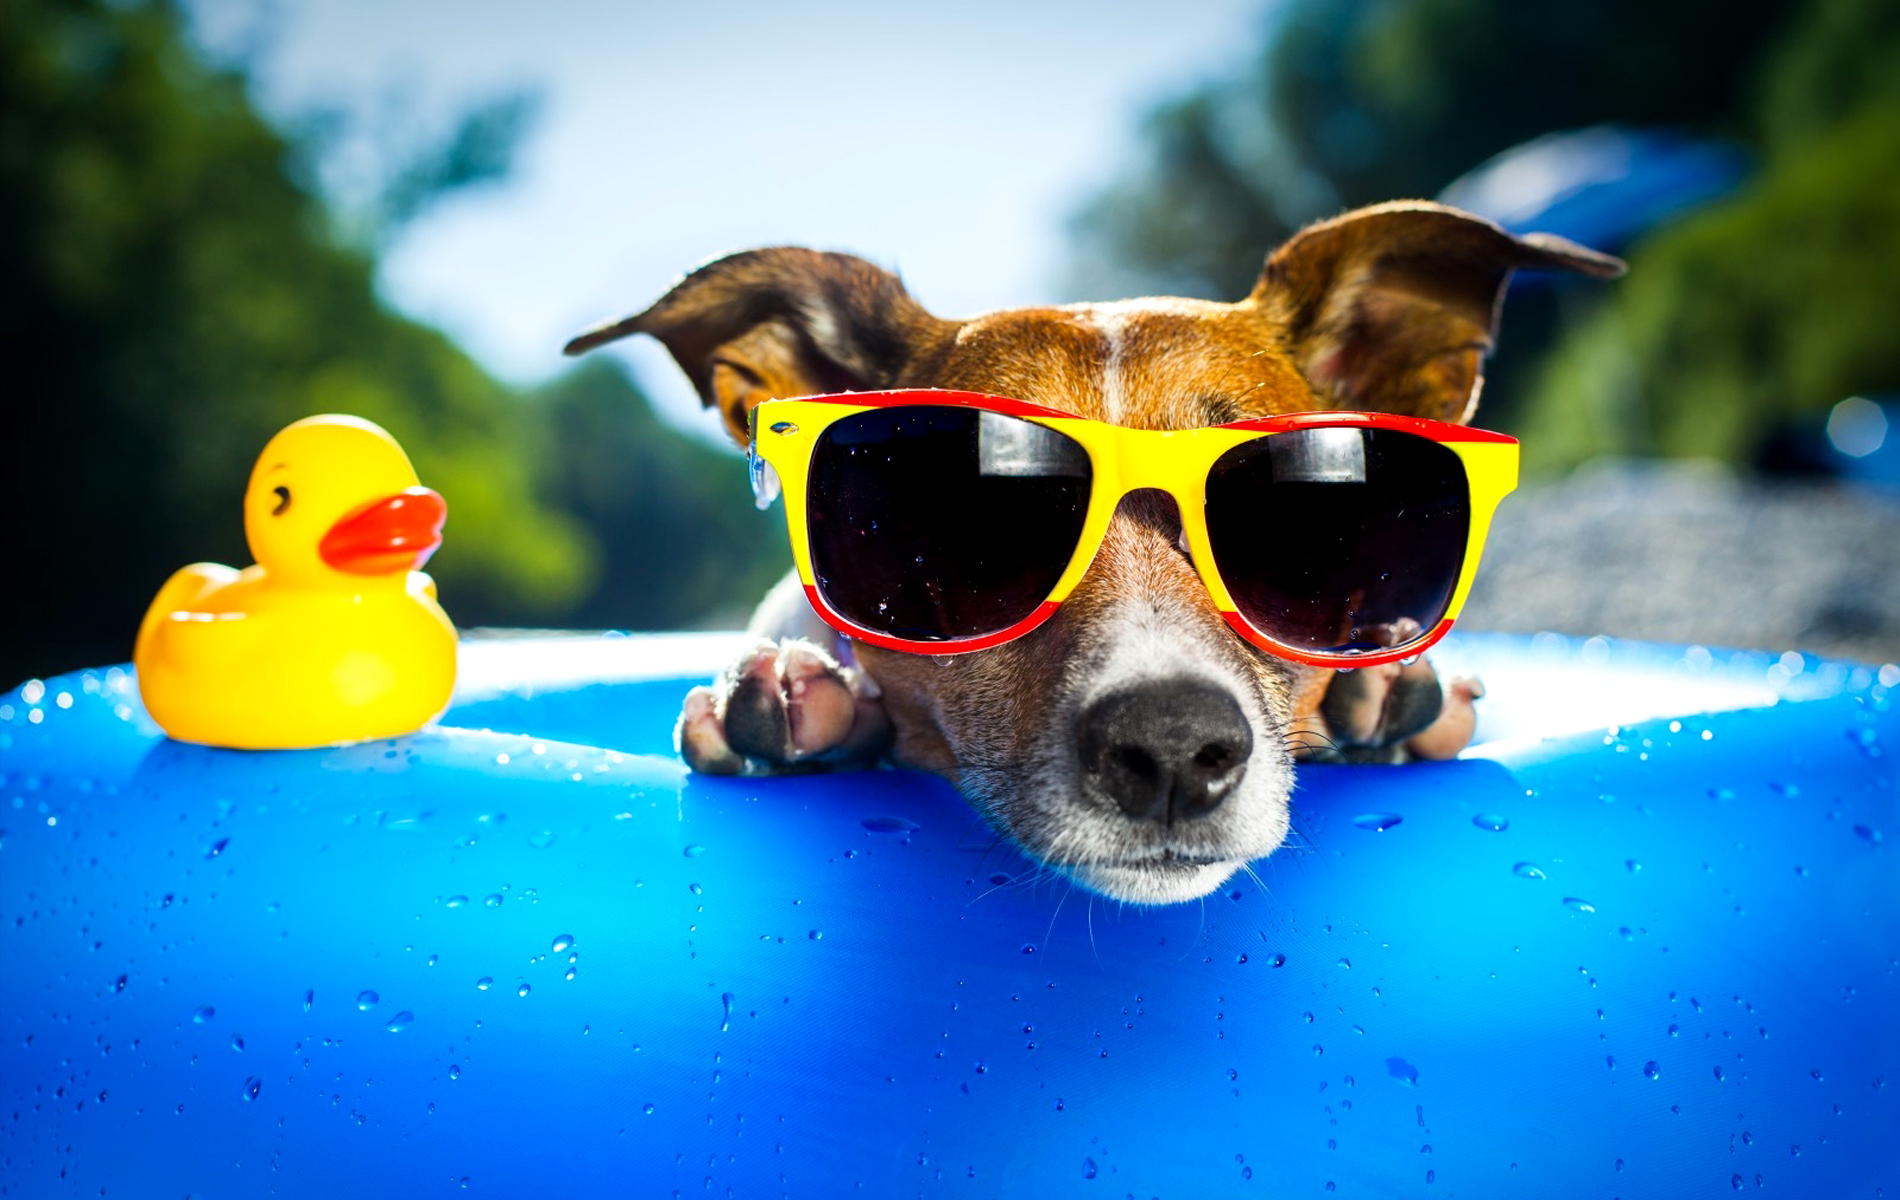 funny dog picture wallpapers 67 wallpapers � adorable